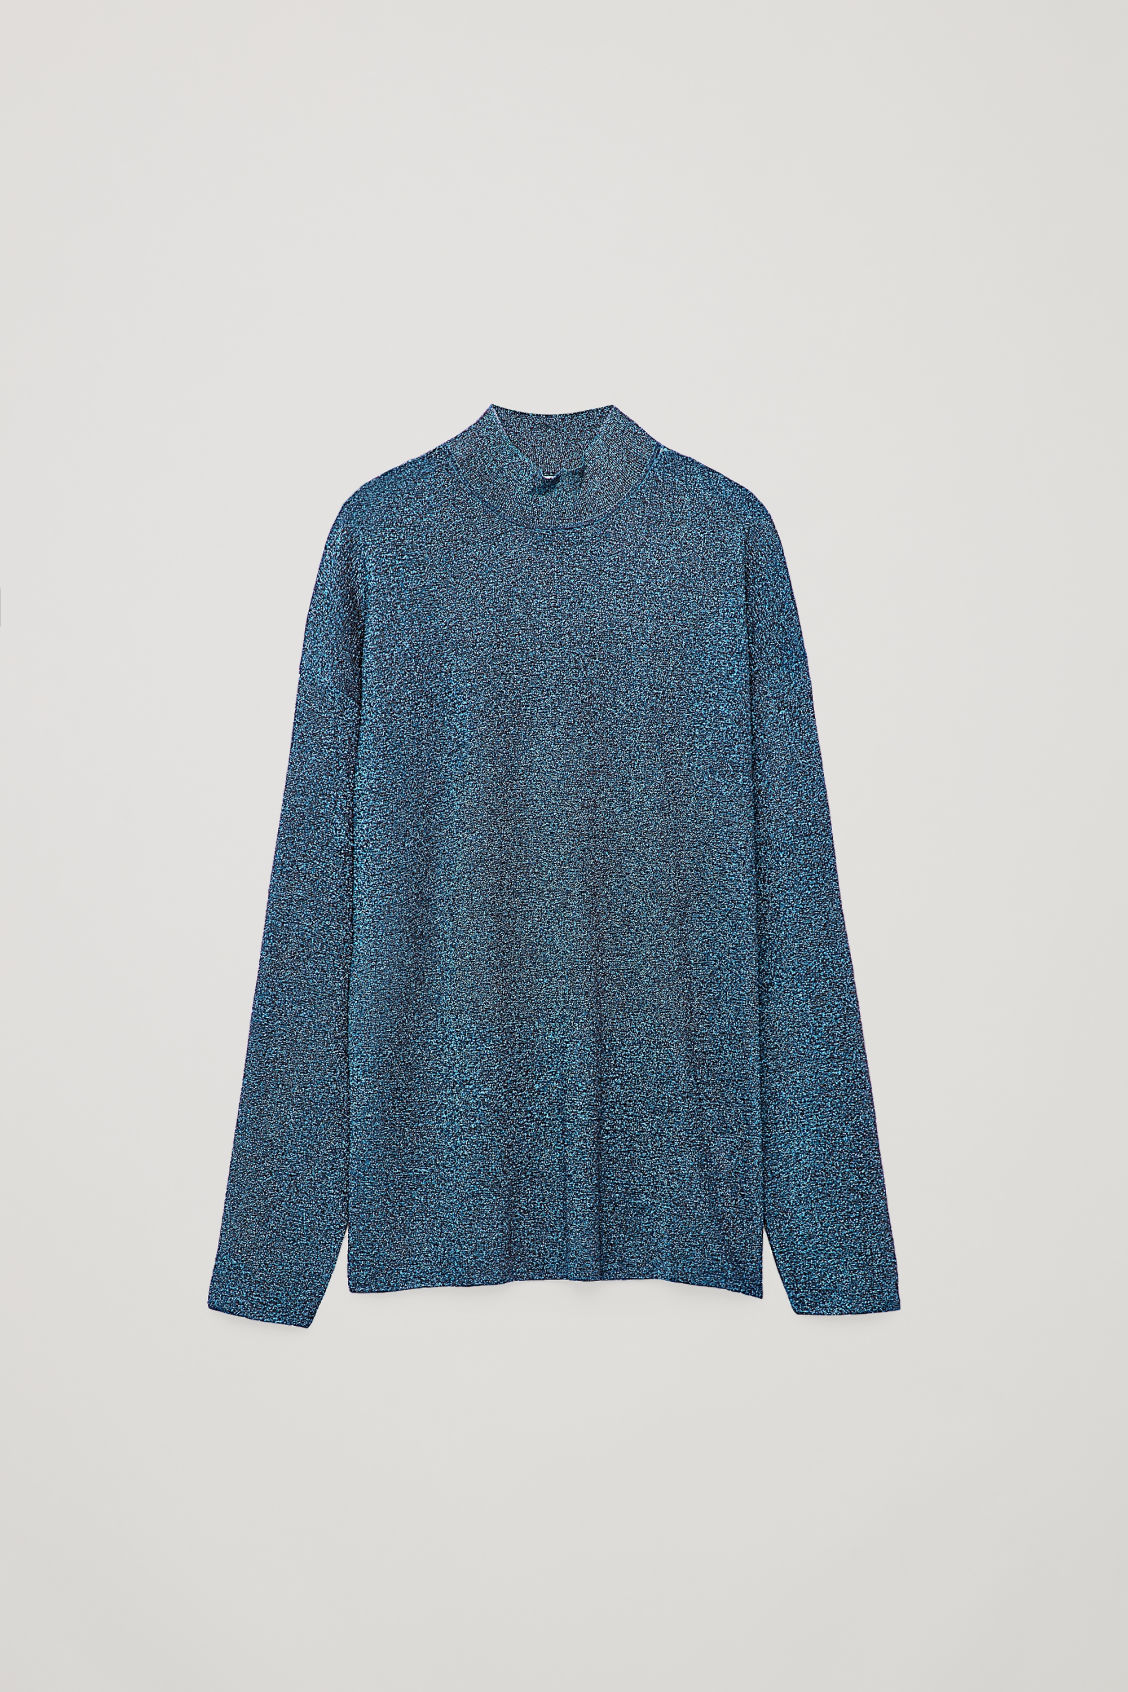 Front image of Cos metallic sheer high-neck knit top in blue